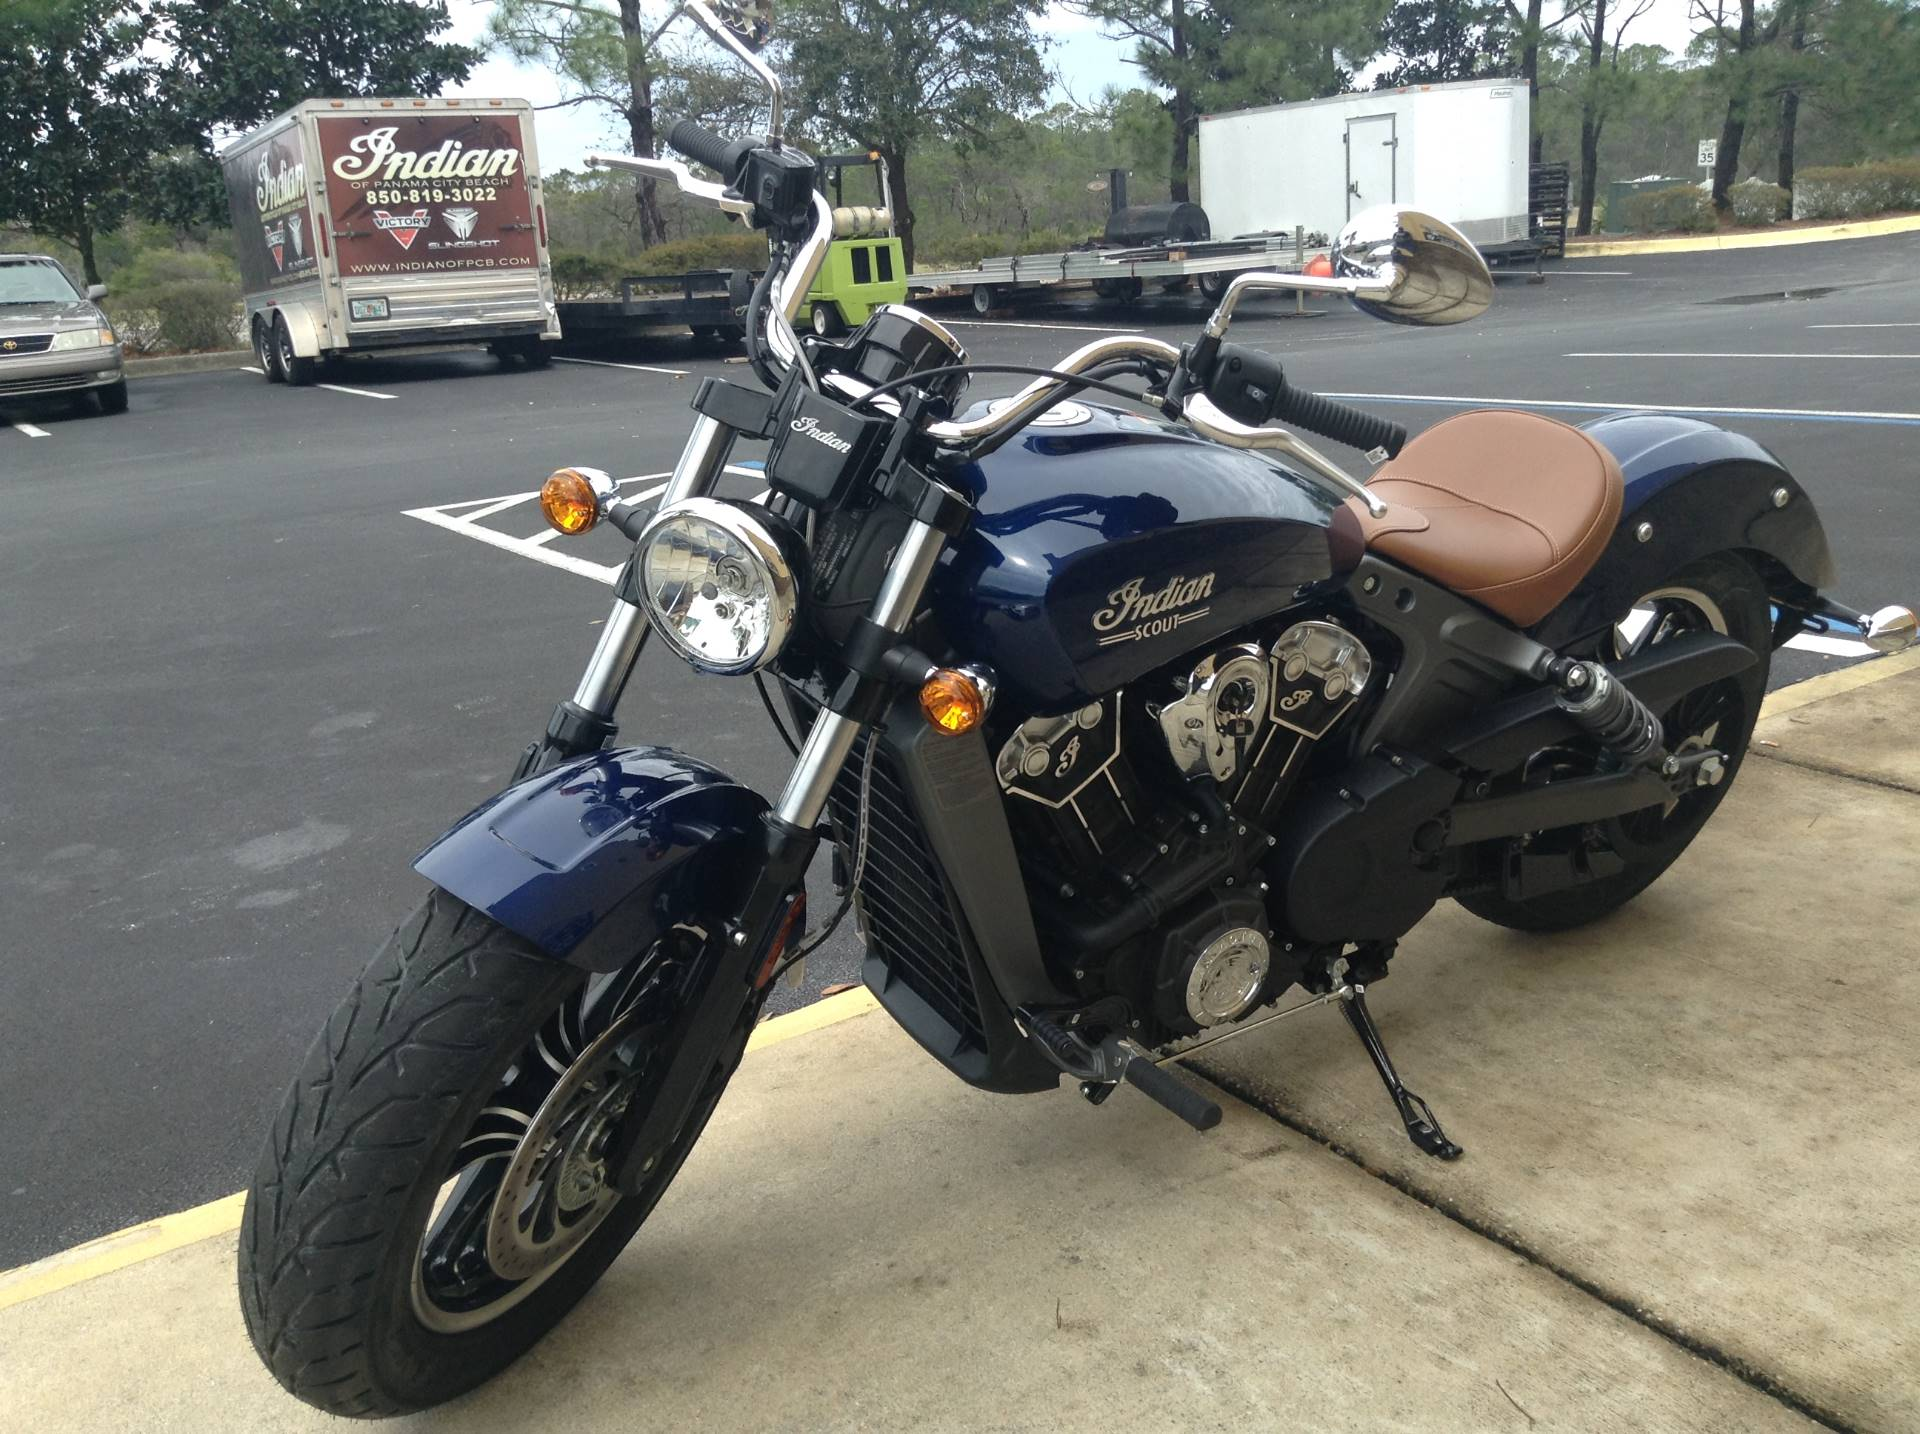 2019 Indian SCOUT ABS in Panama City Beach, Florida - Photo 6